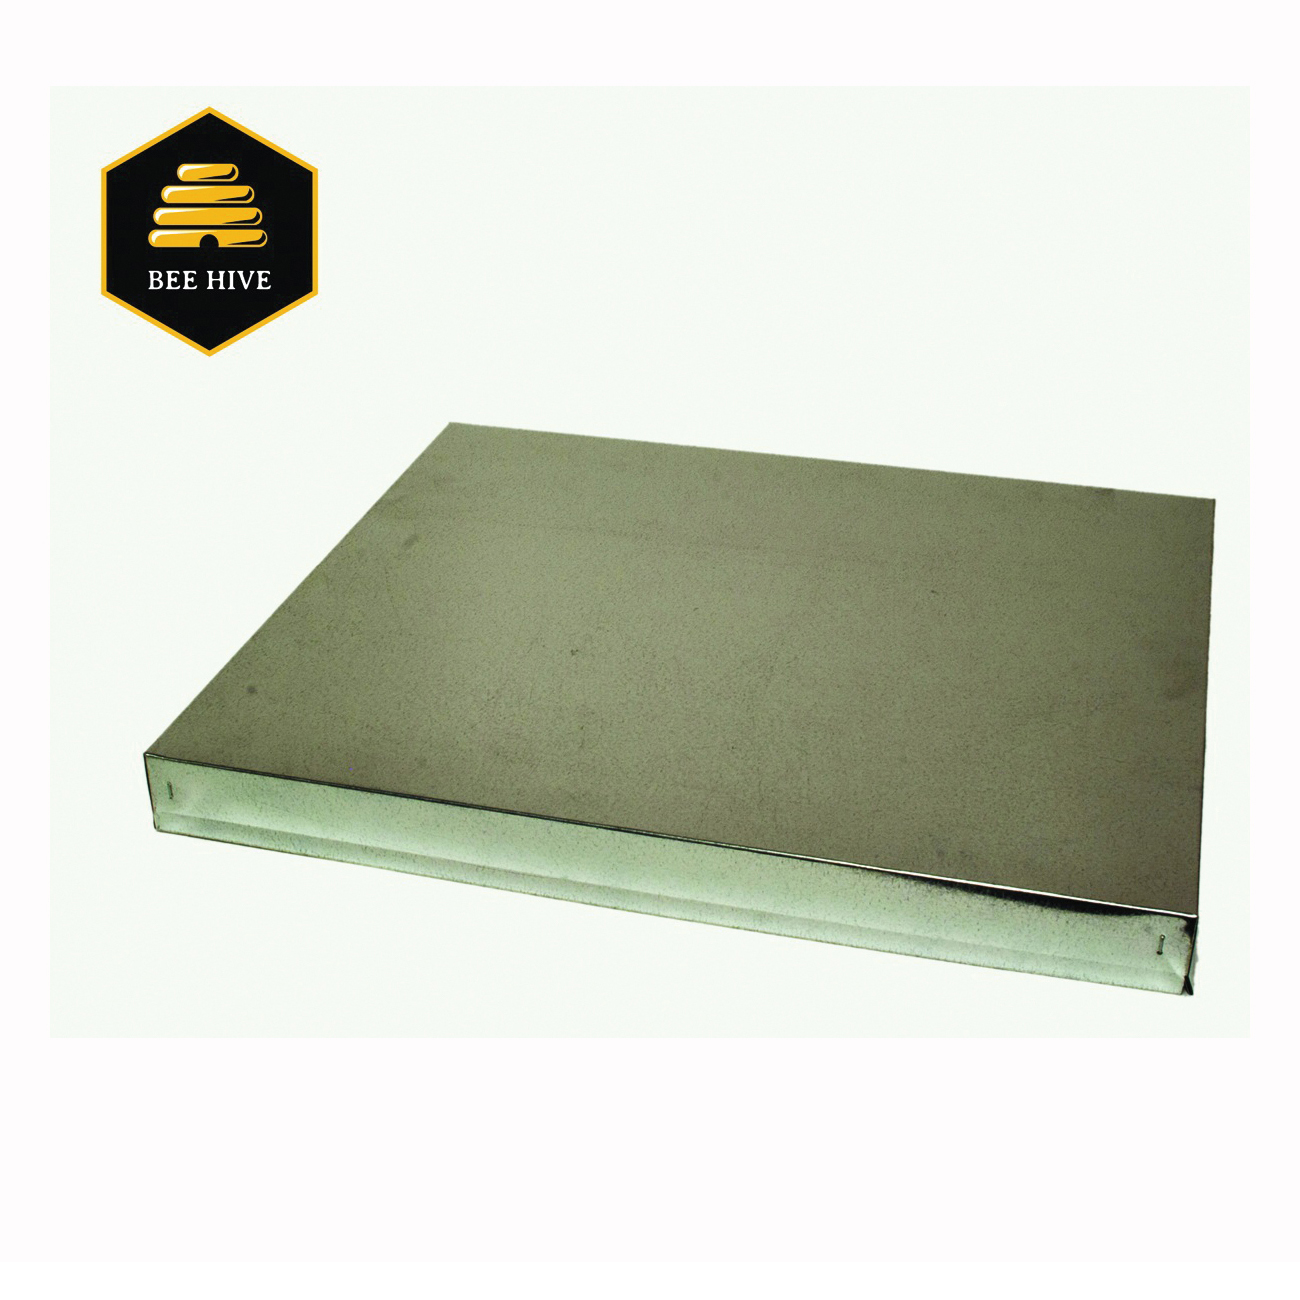 Picture of HARVEST LANE HONEY WWTF-101 Wasatch Top, Flat, Metal, For: 10 Frame Langstroth Hives